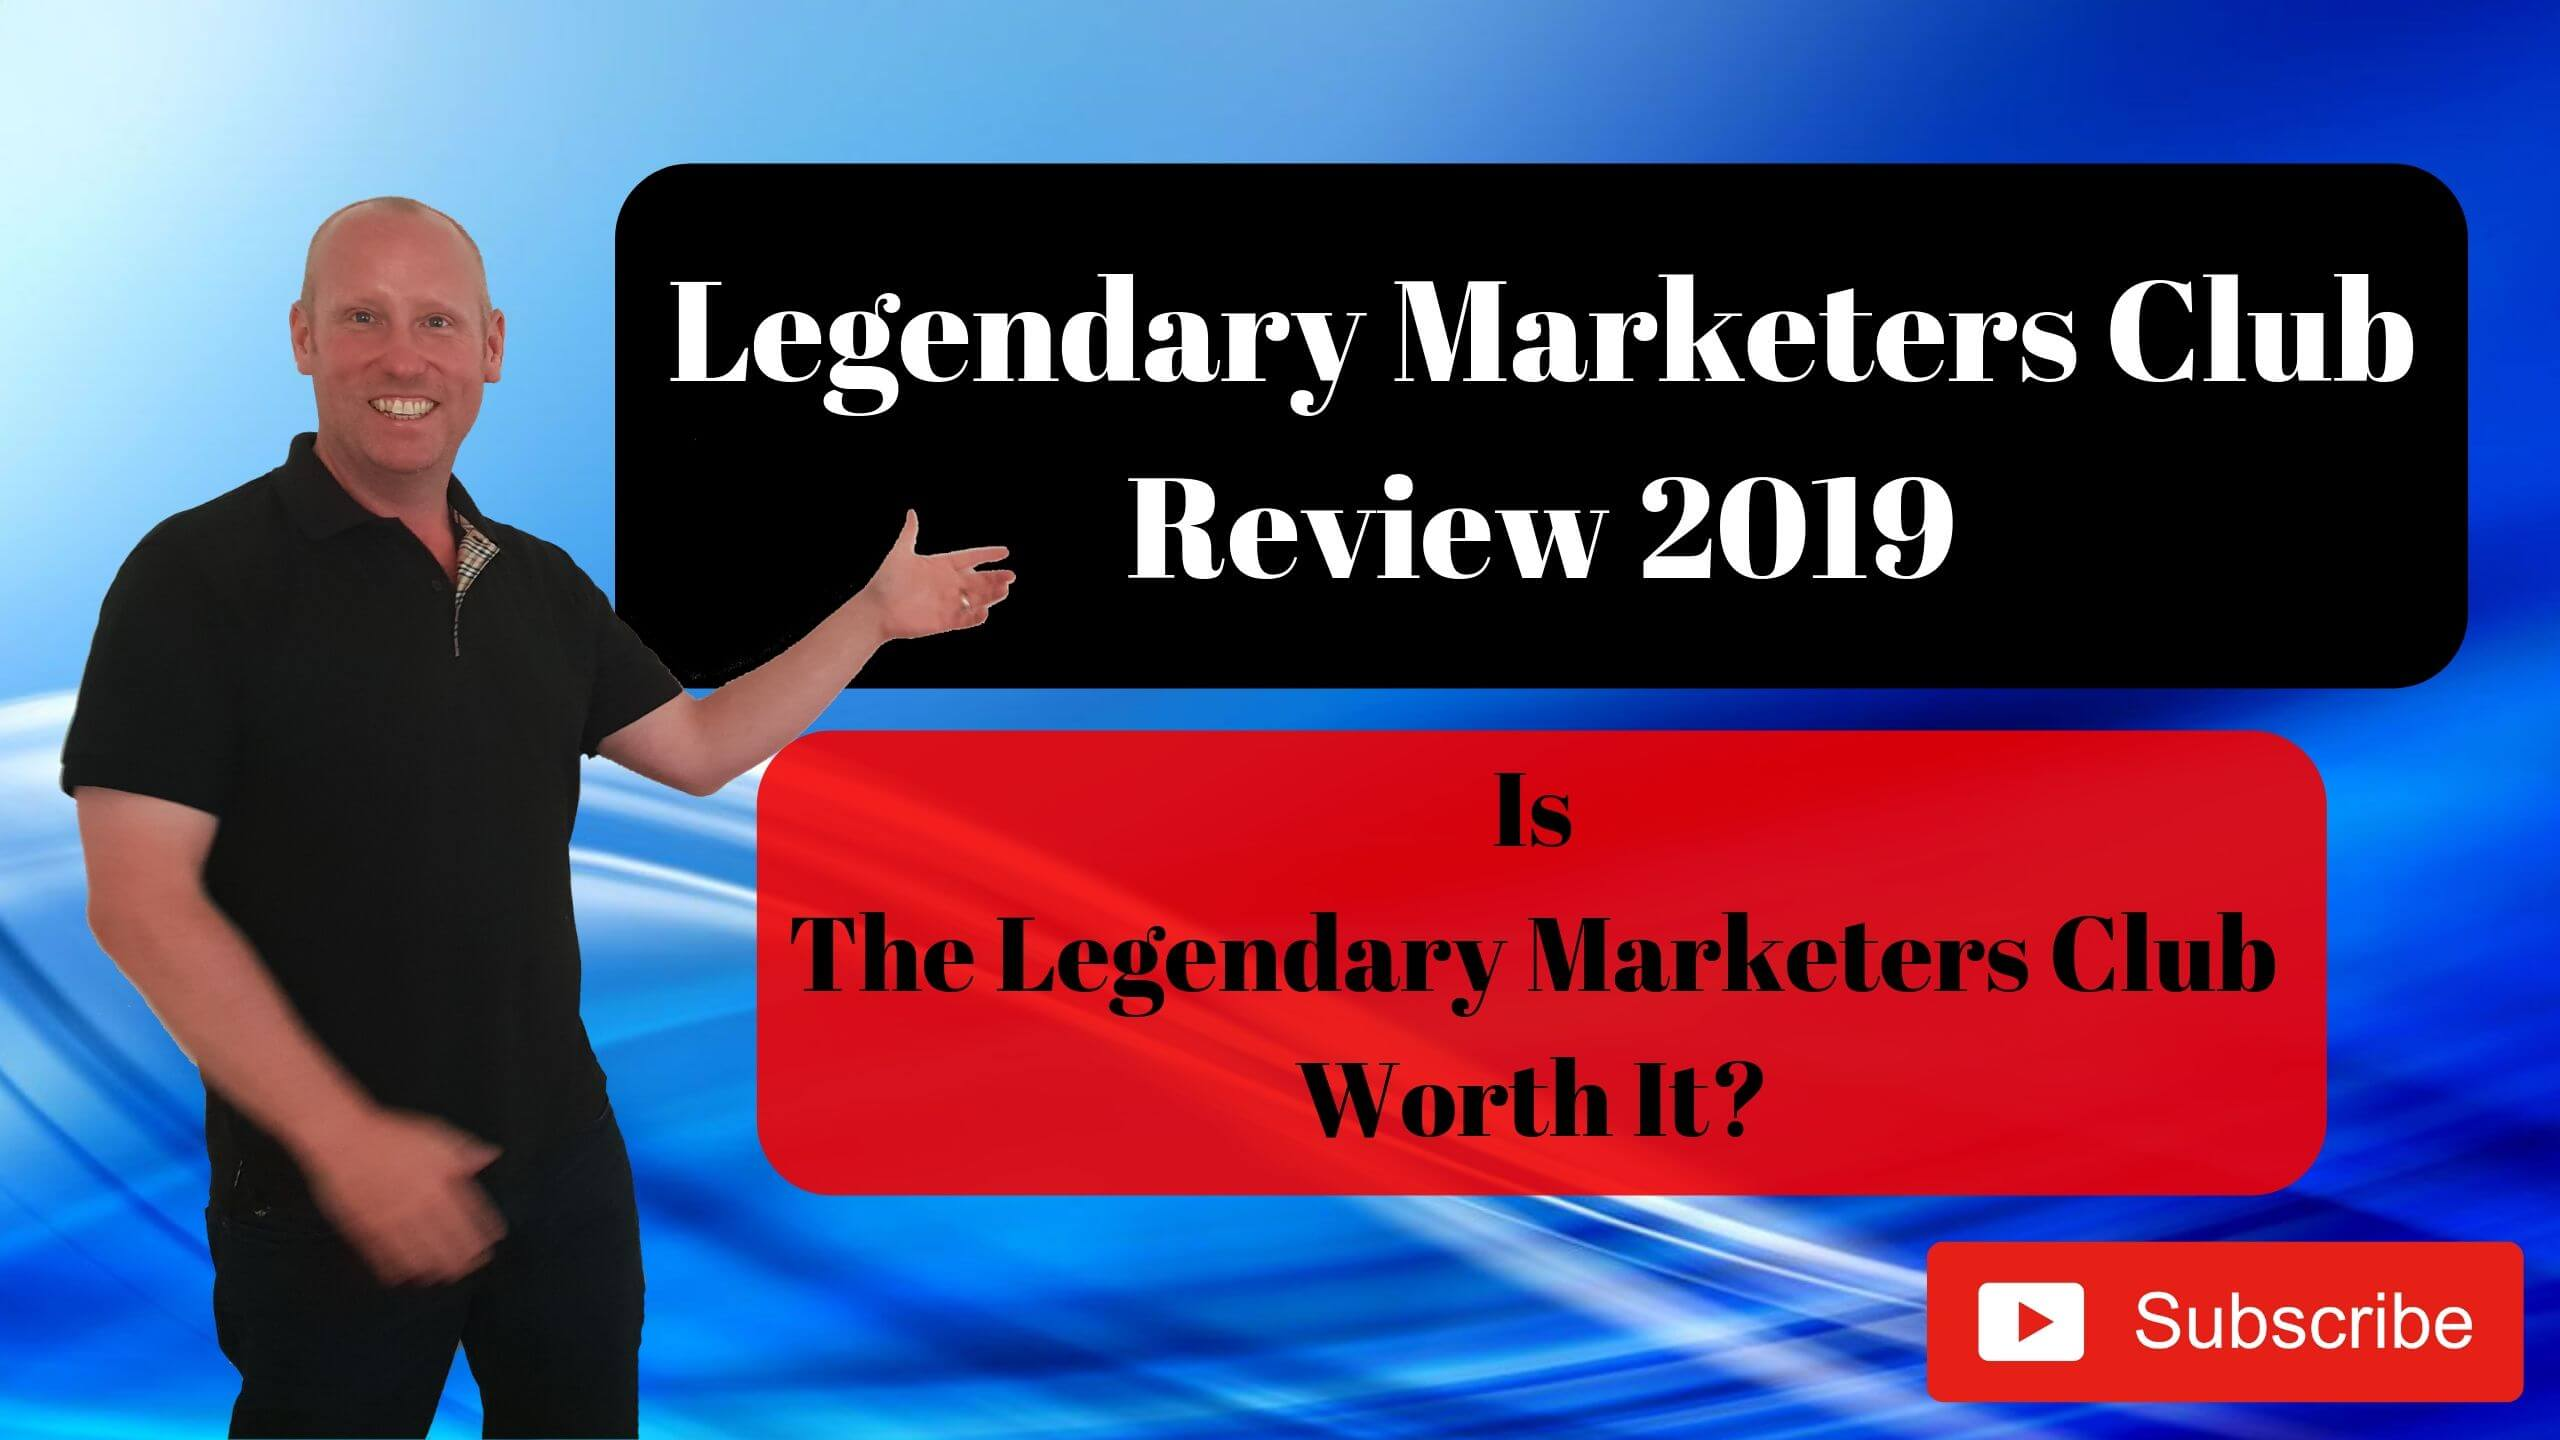 Legendary Marketer Online Voucher Code  2020